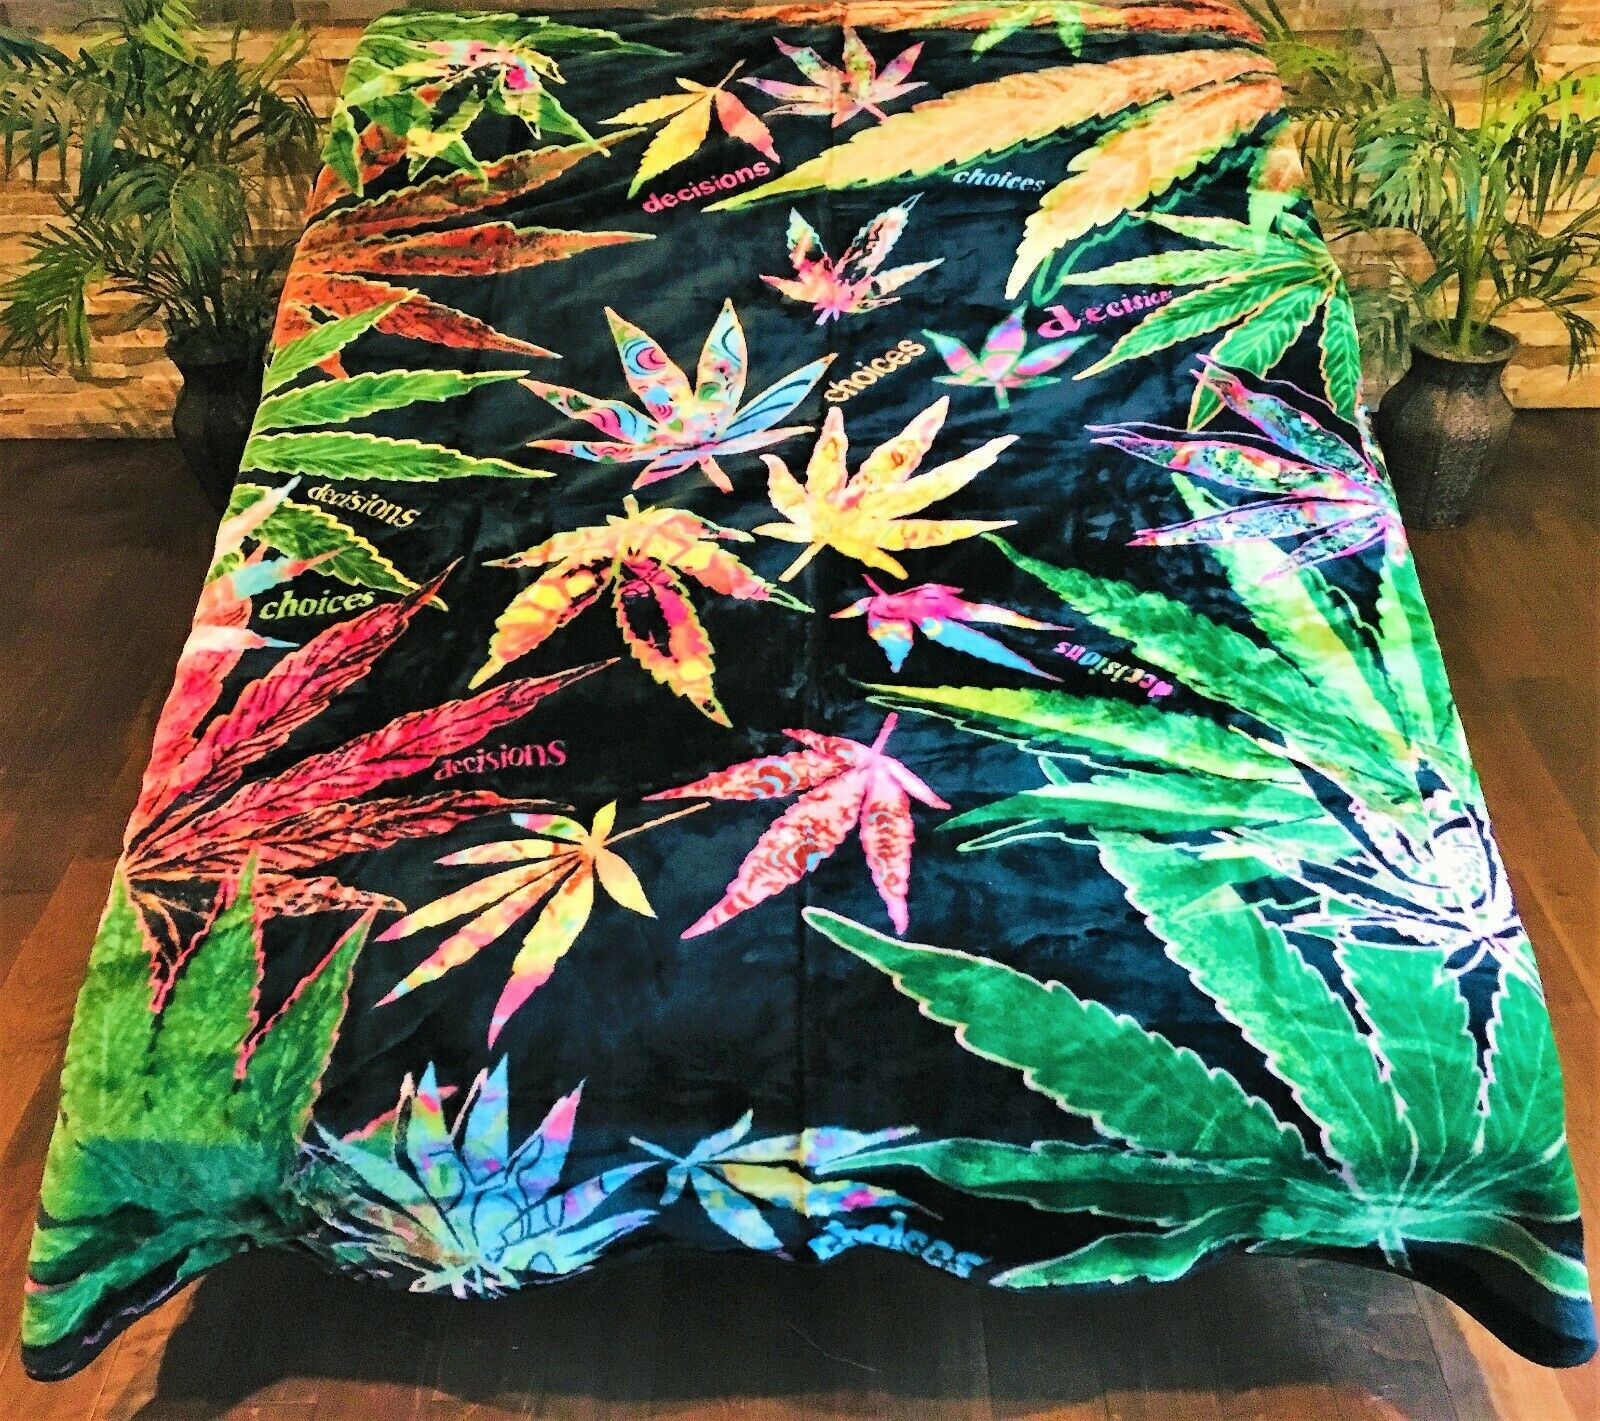 ☀️New  79x96 Luxury MEDIUM Weight Queen Blanket Weed Leaf Marijuana MultiColoreeeosso